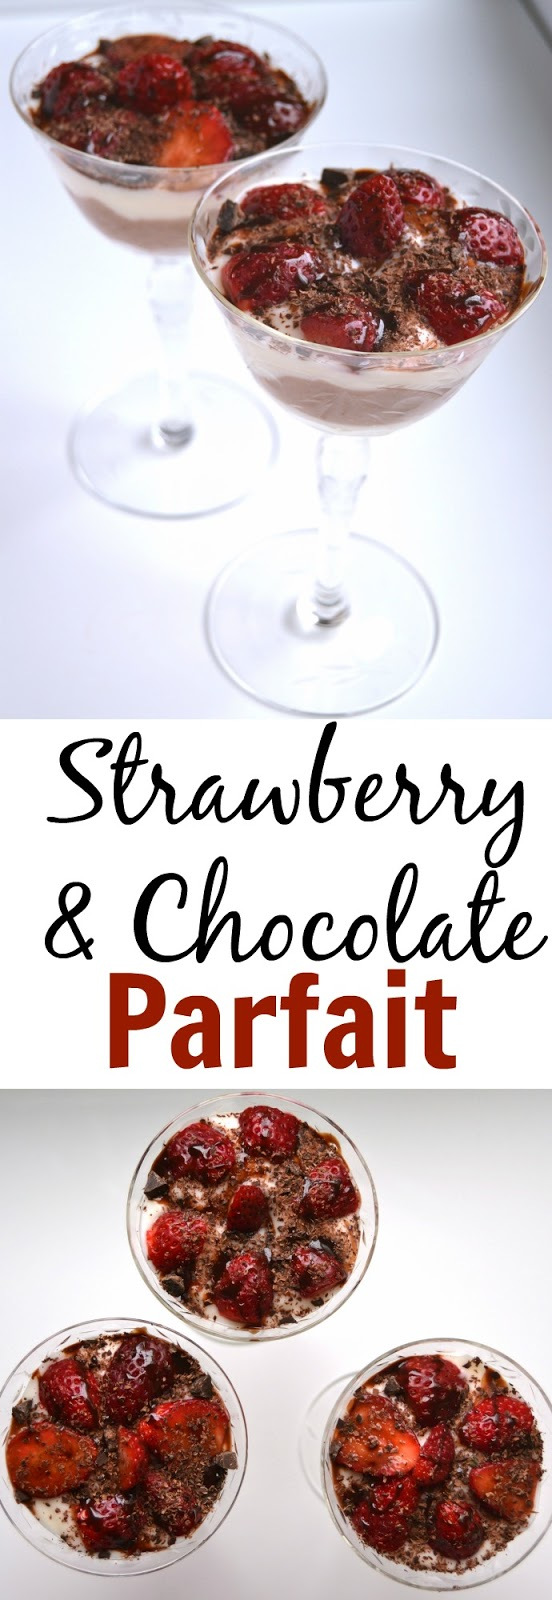 These strawberry and Chocolate Parfaits are sure to wow your loved ones and only take 10 minutes to make and is healthier than many desserts! www.nutritionistreviews.com